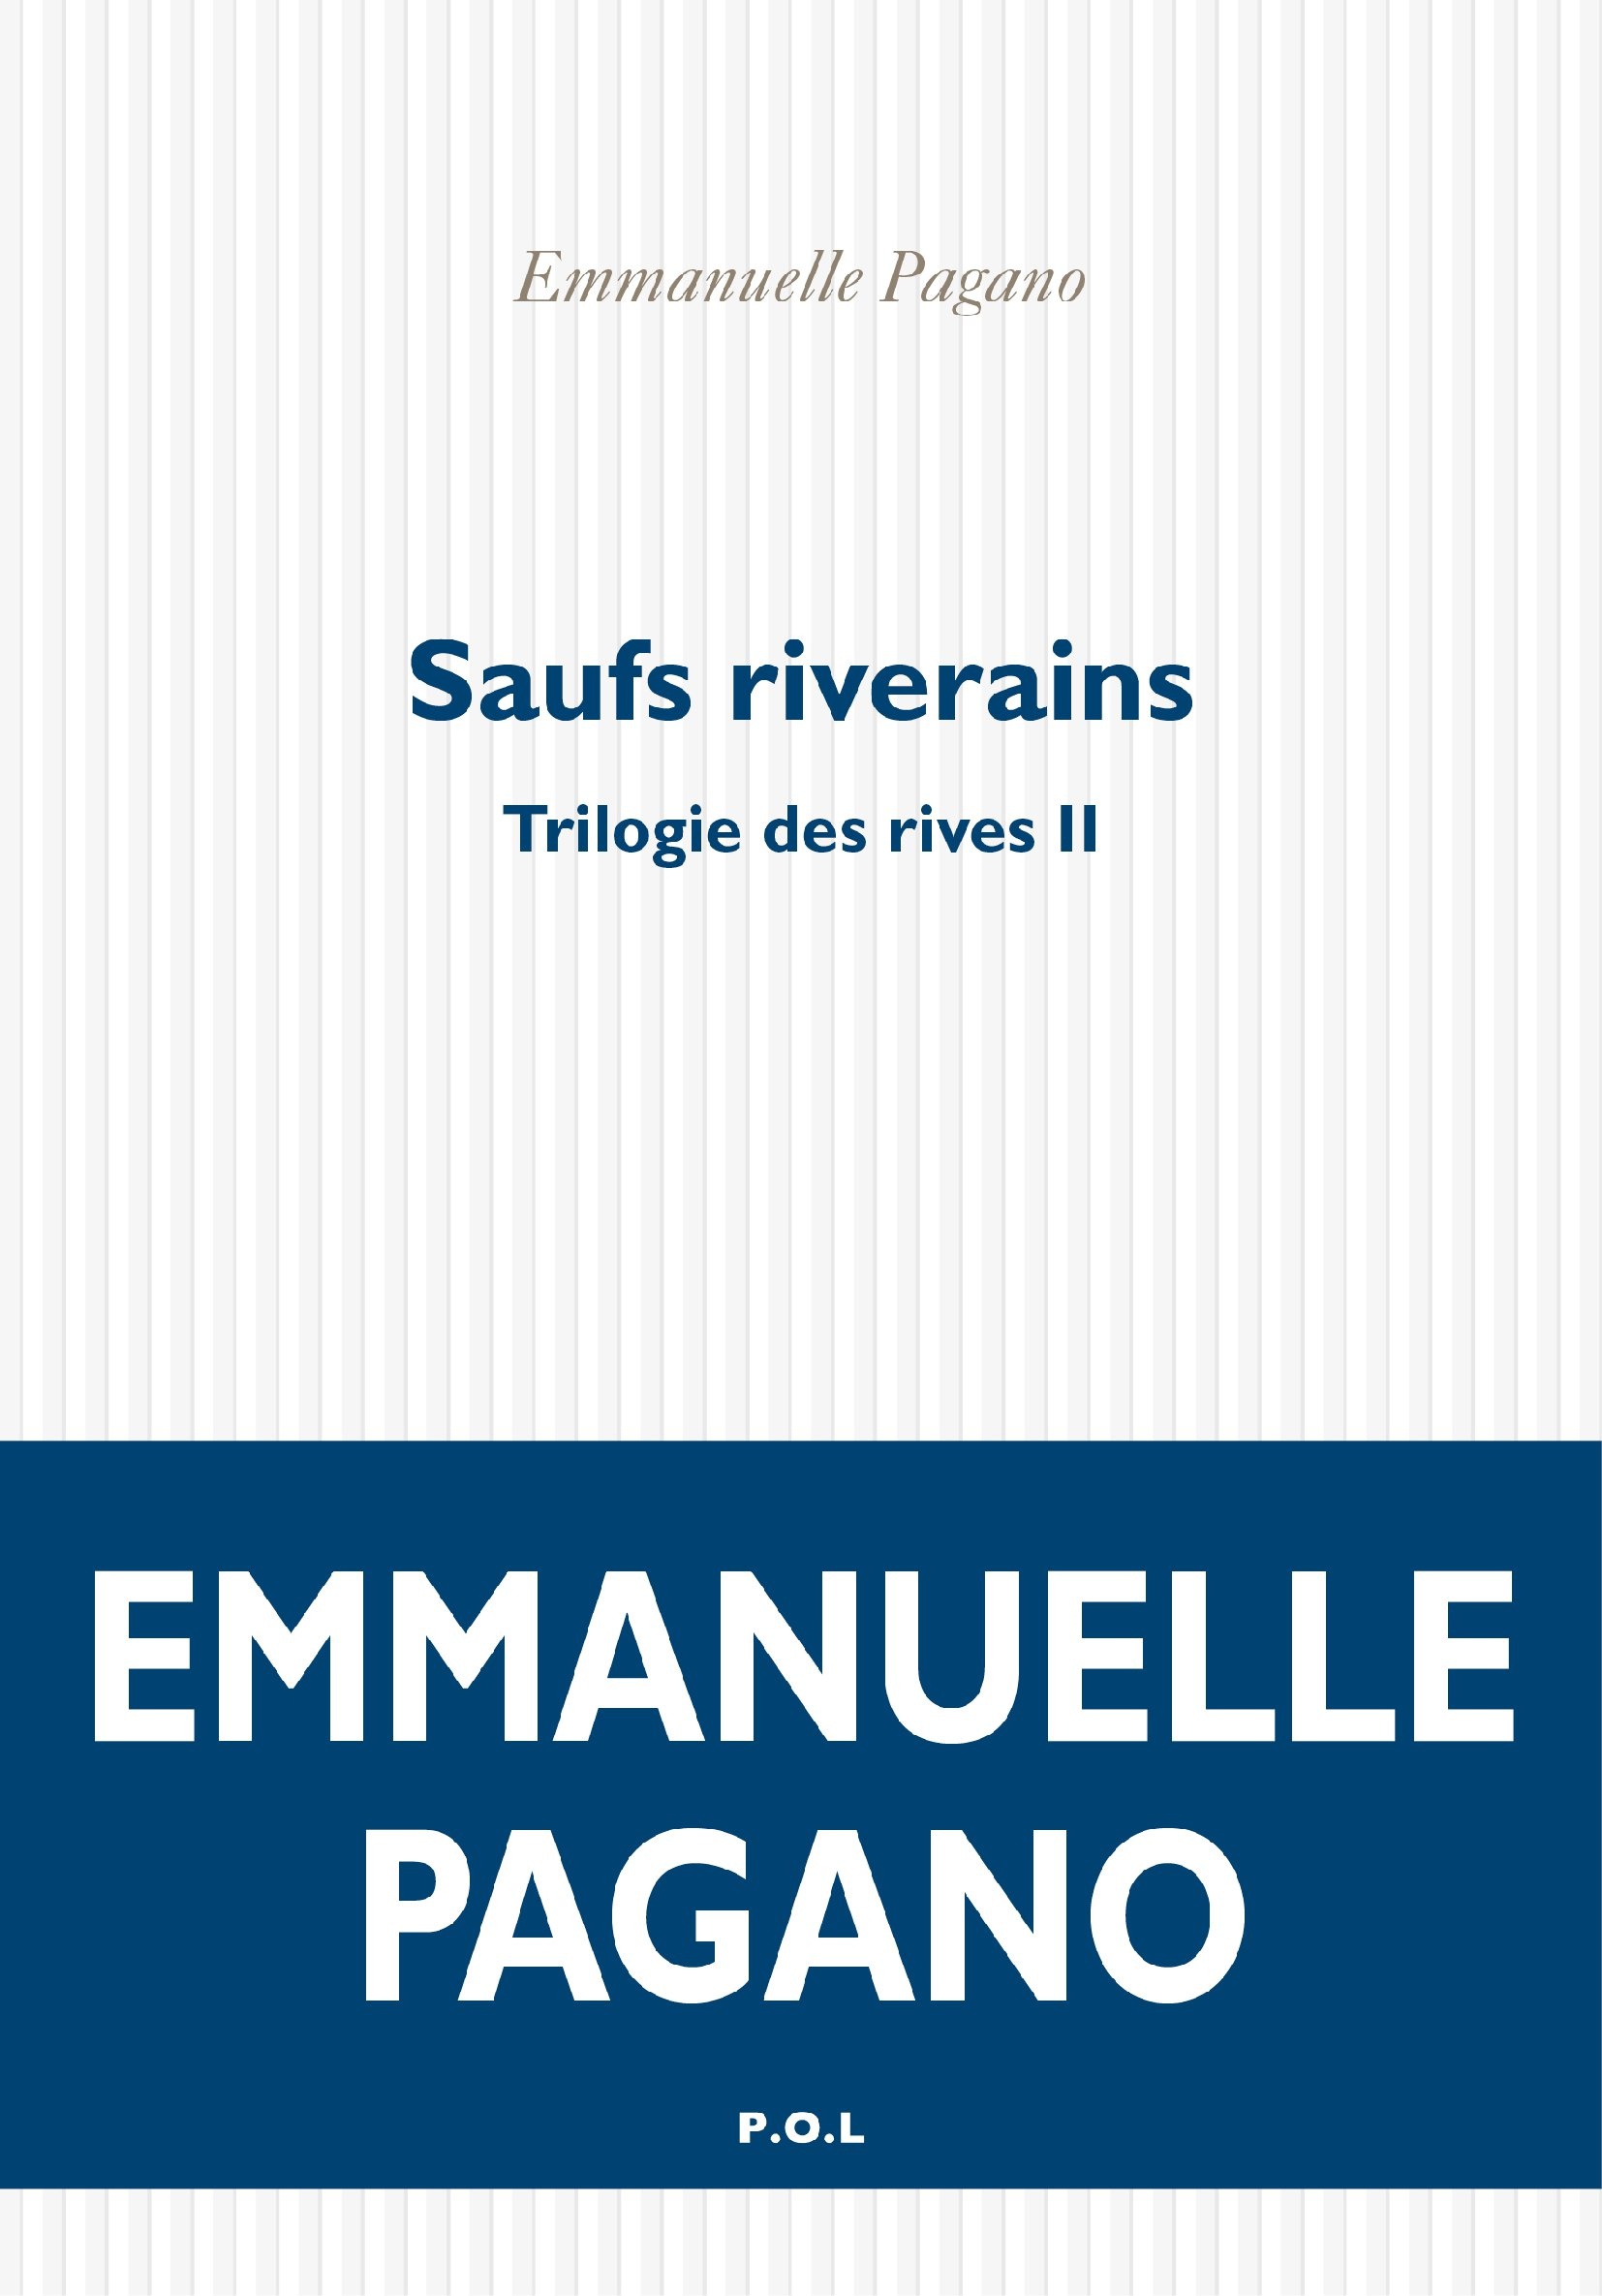 Trilogie des rives (Tome 2) - Saufs riverains